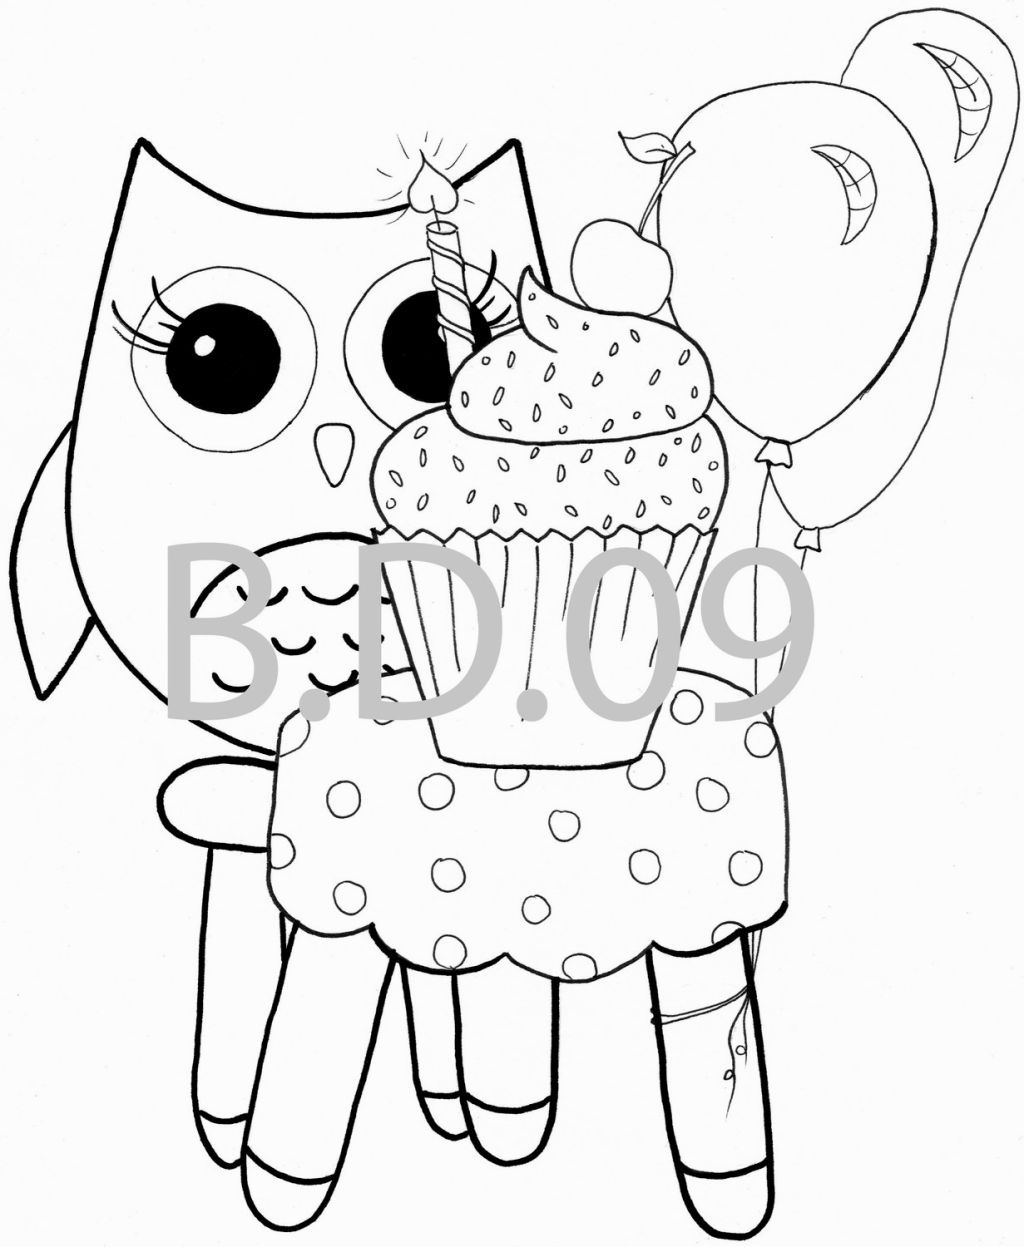 Owl Printable Coloring Pages | Coloring Pages | Pinterest